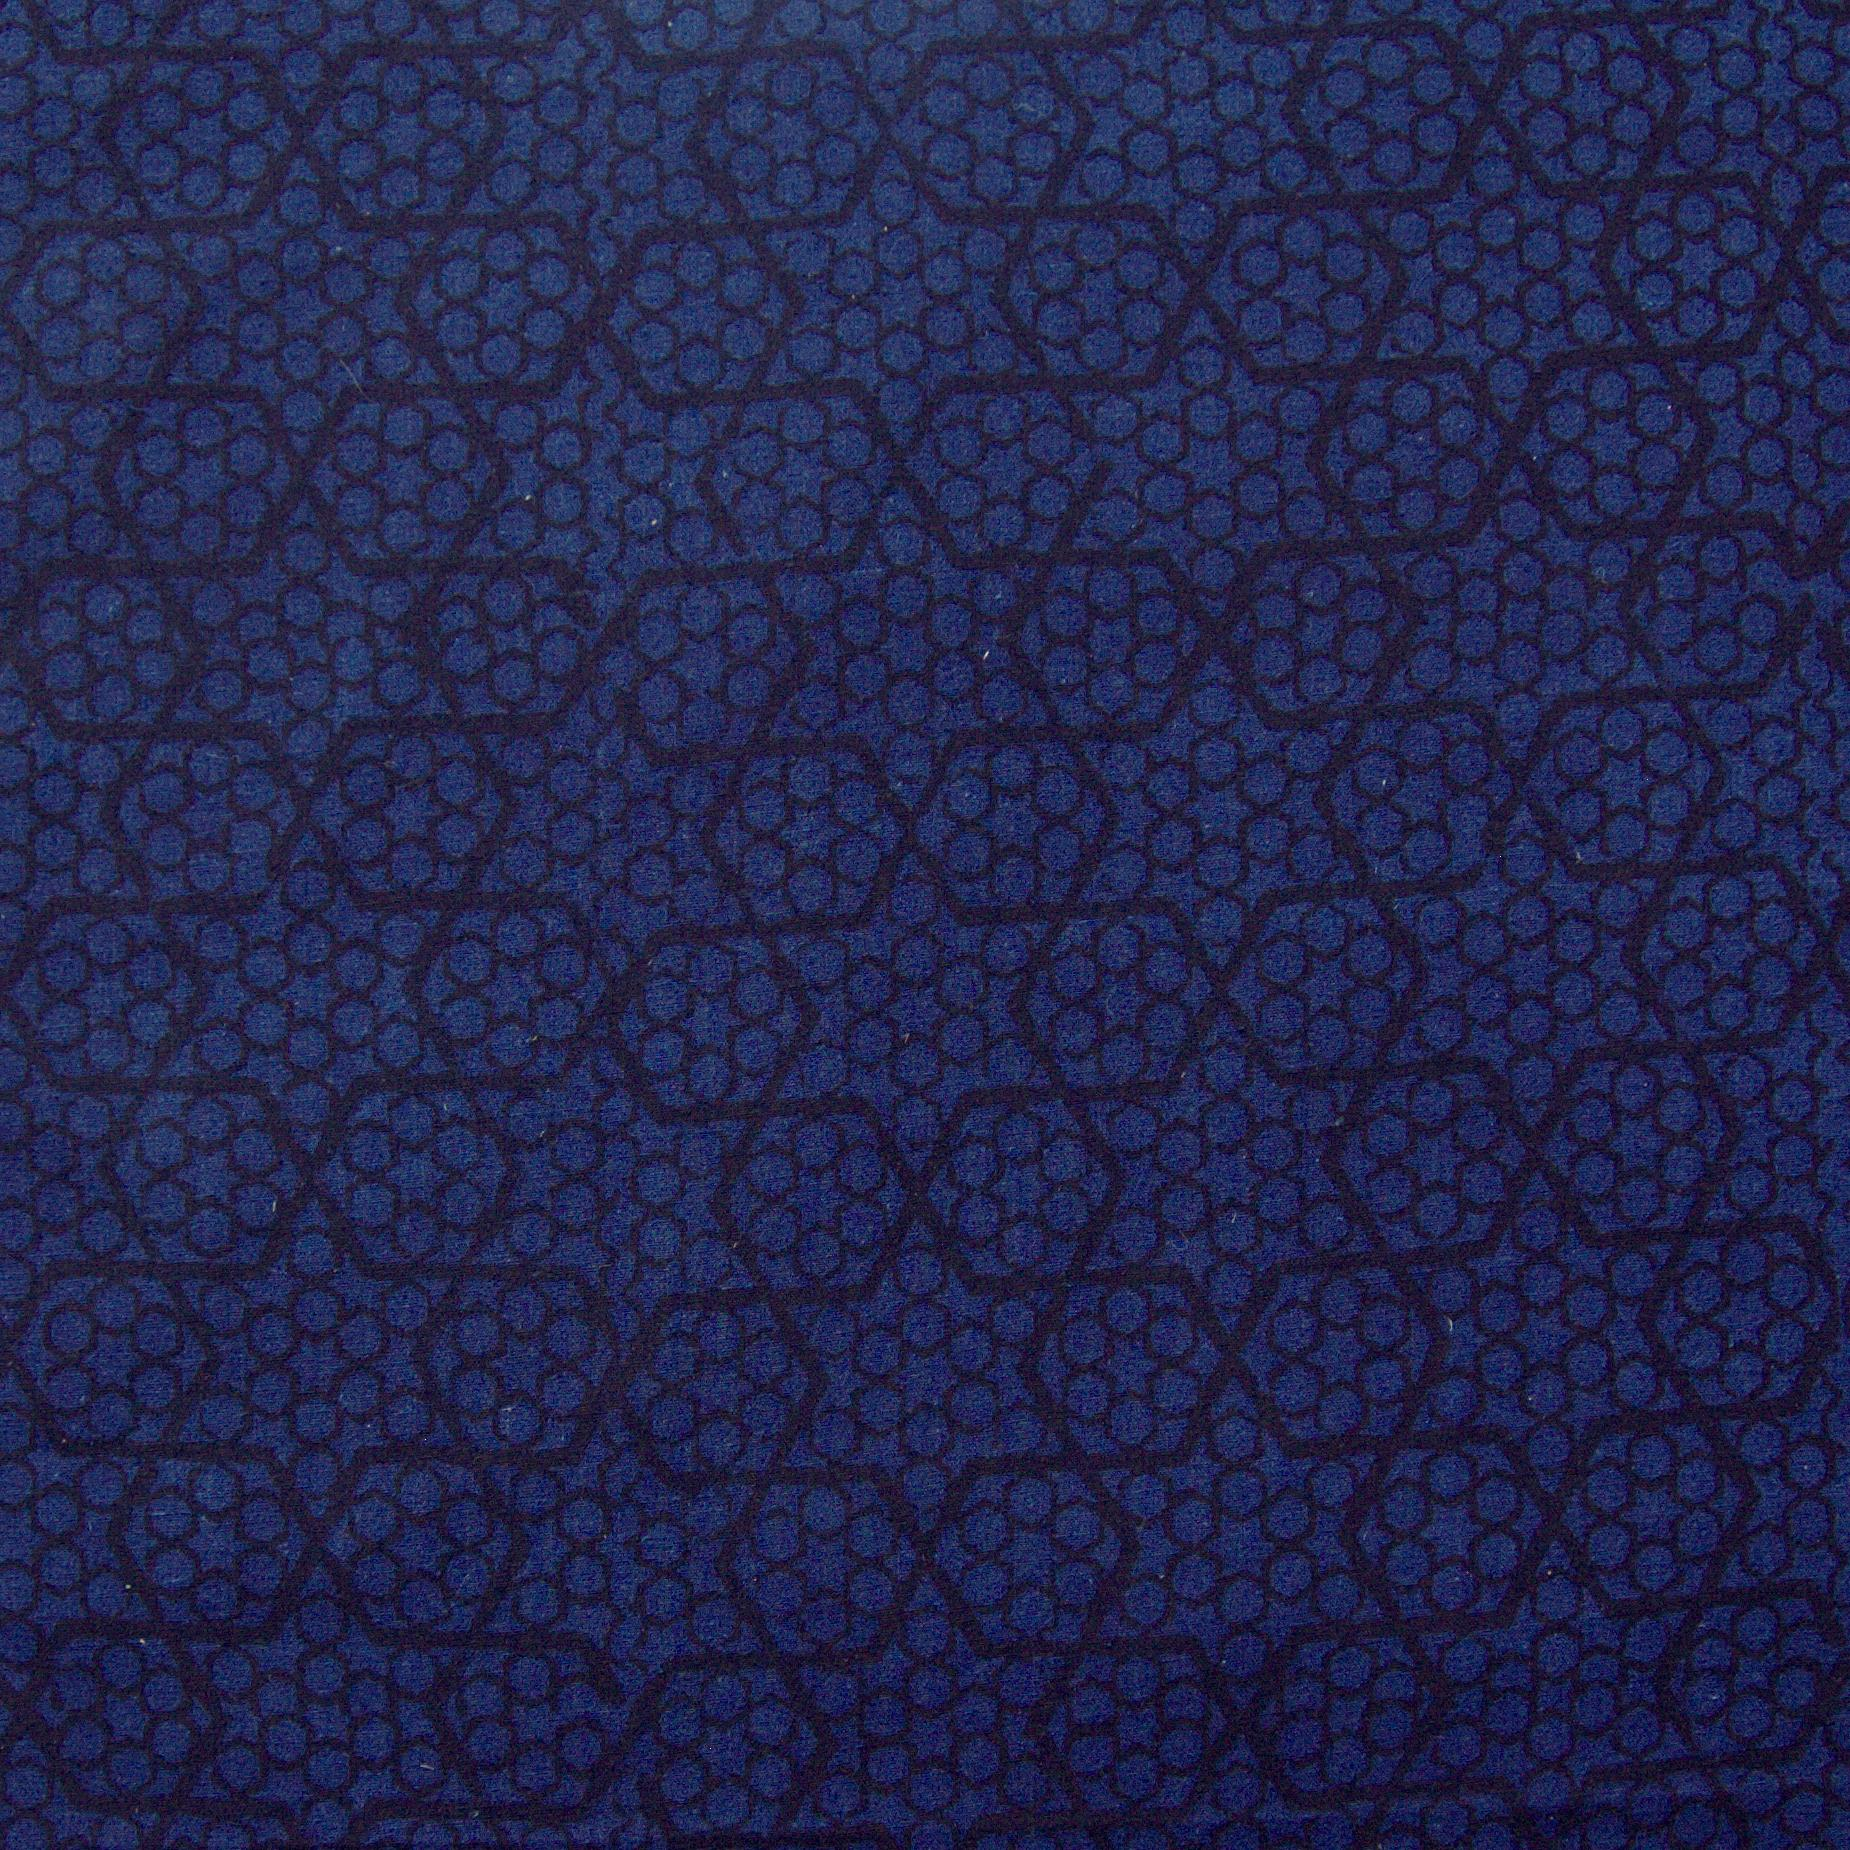 100% Block-Printed Cotton Fabric from India - Ajrak - Indigo Black Honey Comb Print